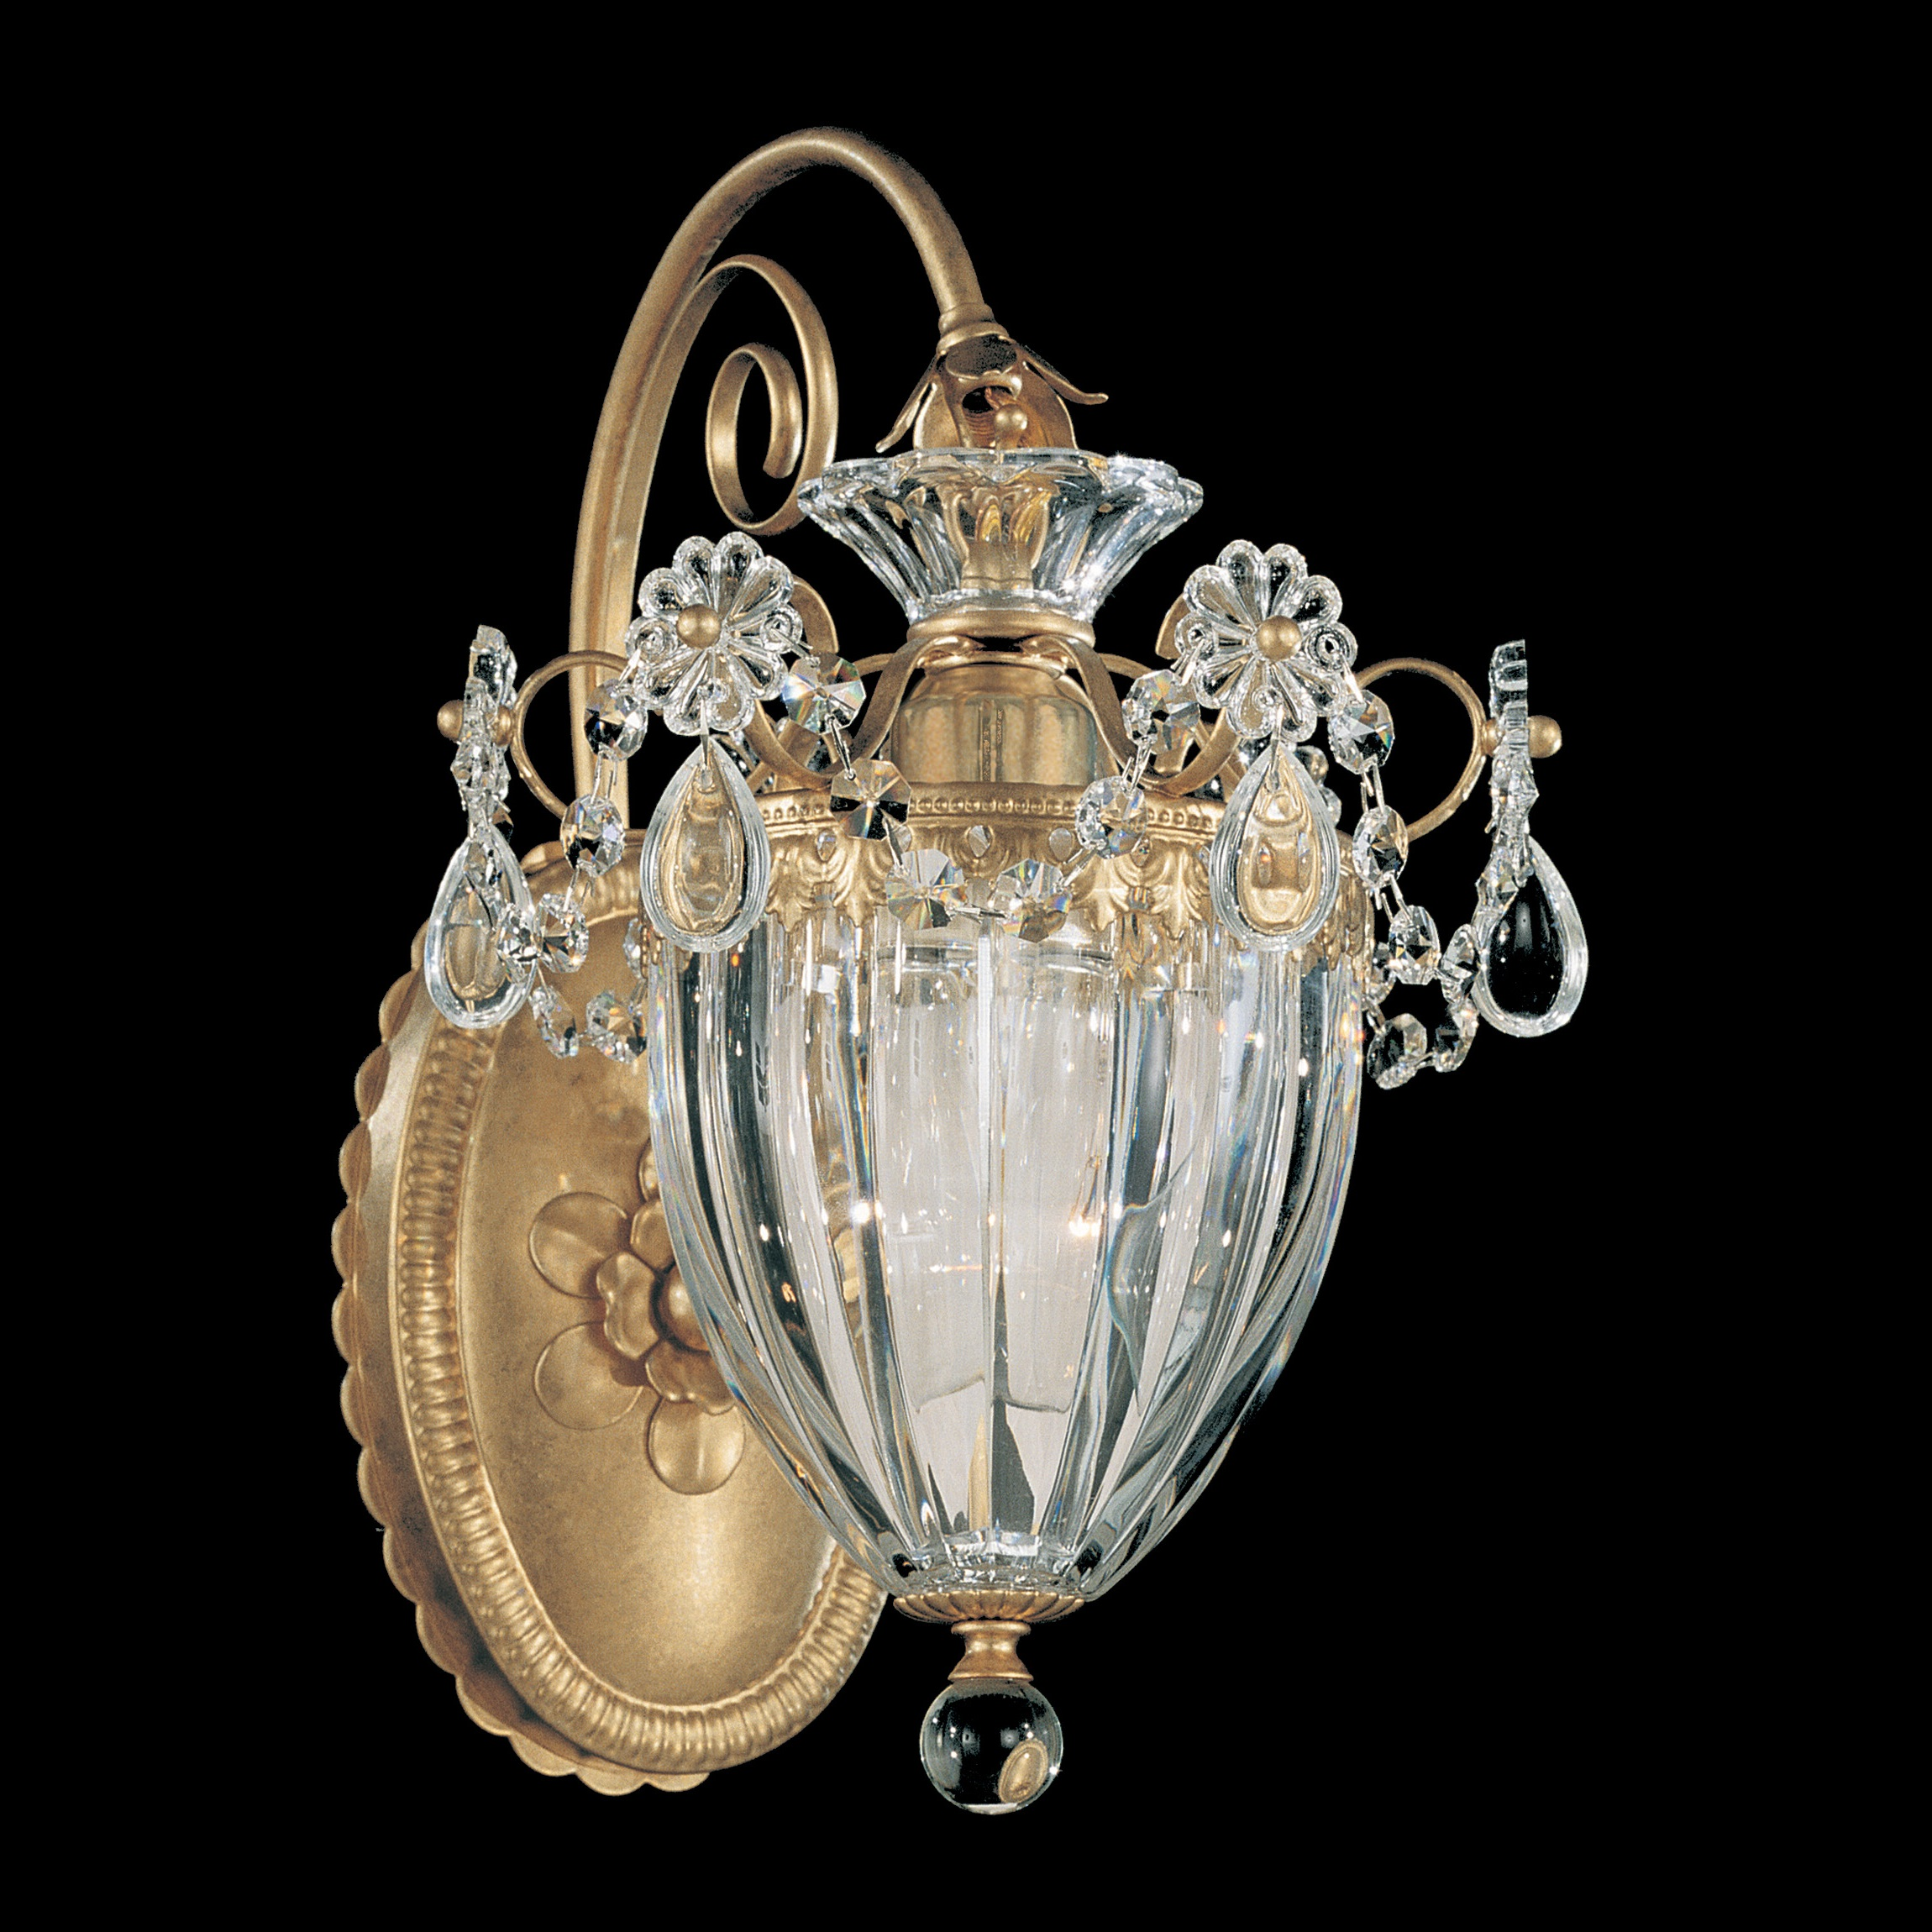 Schonbek Bagatelle 1240 Candle Sconces for Walls Brooklyn,New York- Accentuations Brand